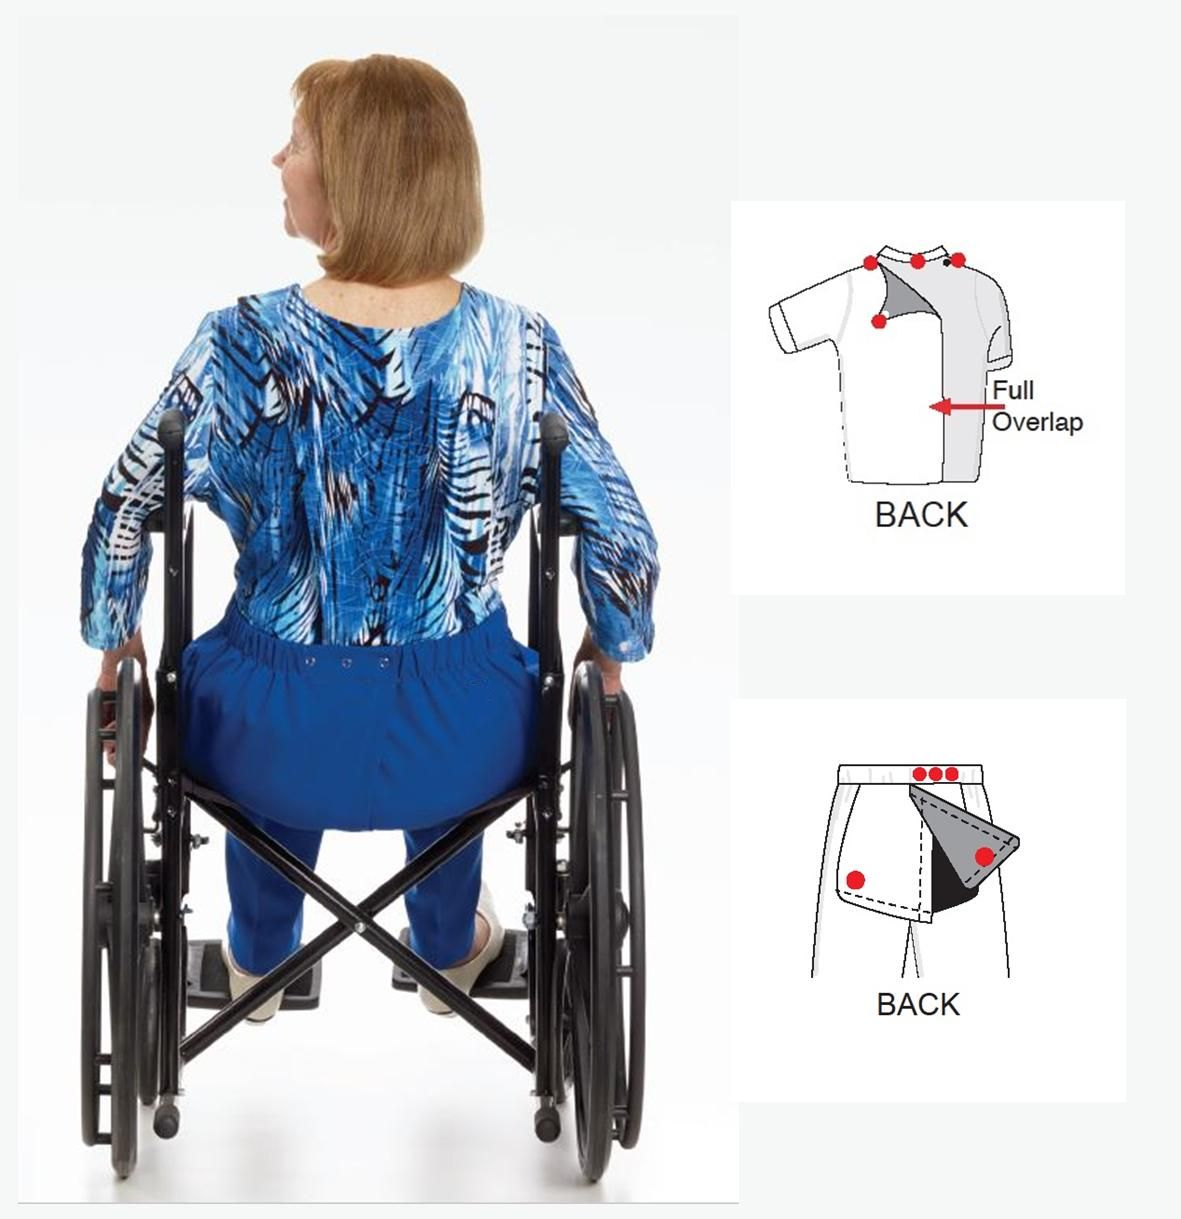 5b47ef1c3552 Ashley's Adaptive Apparel | Adaptive Clothing & Footwear located in  Winnipeg MB. Regular & Open Back Clothing for Women and Men. Over 2000sq ft  of shopping ...